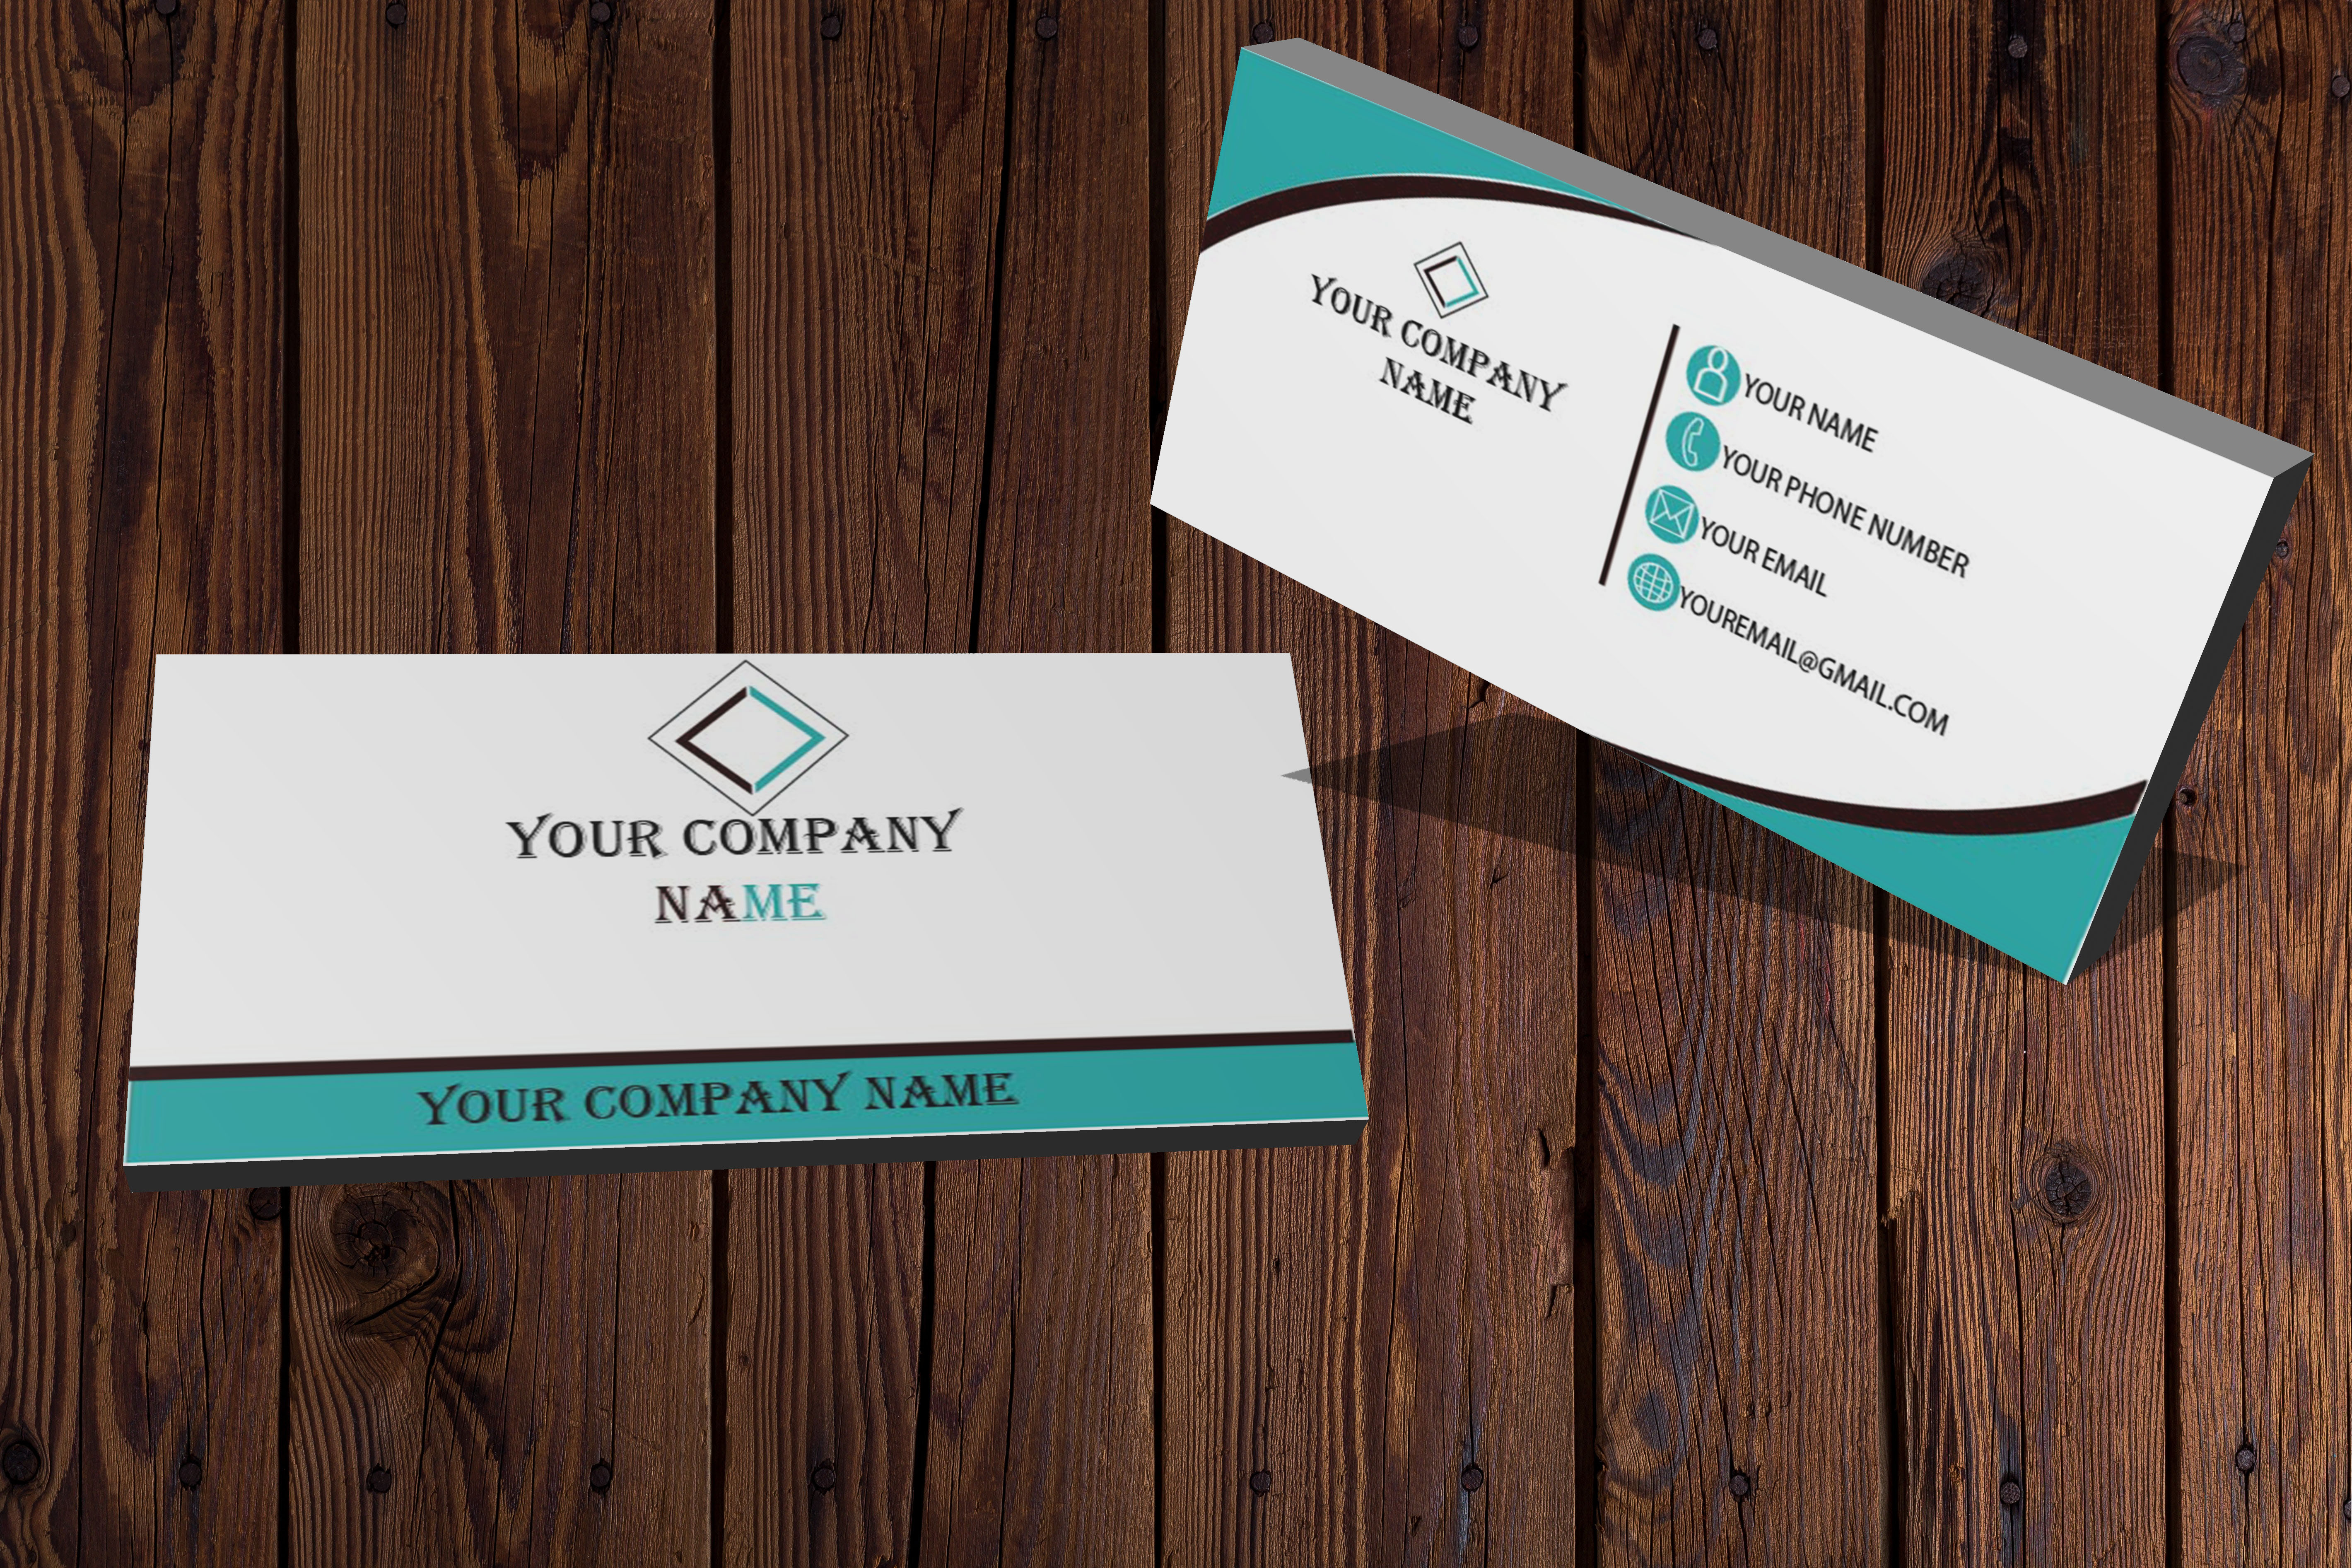 I will create a modern business card